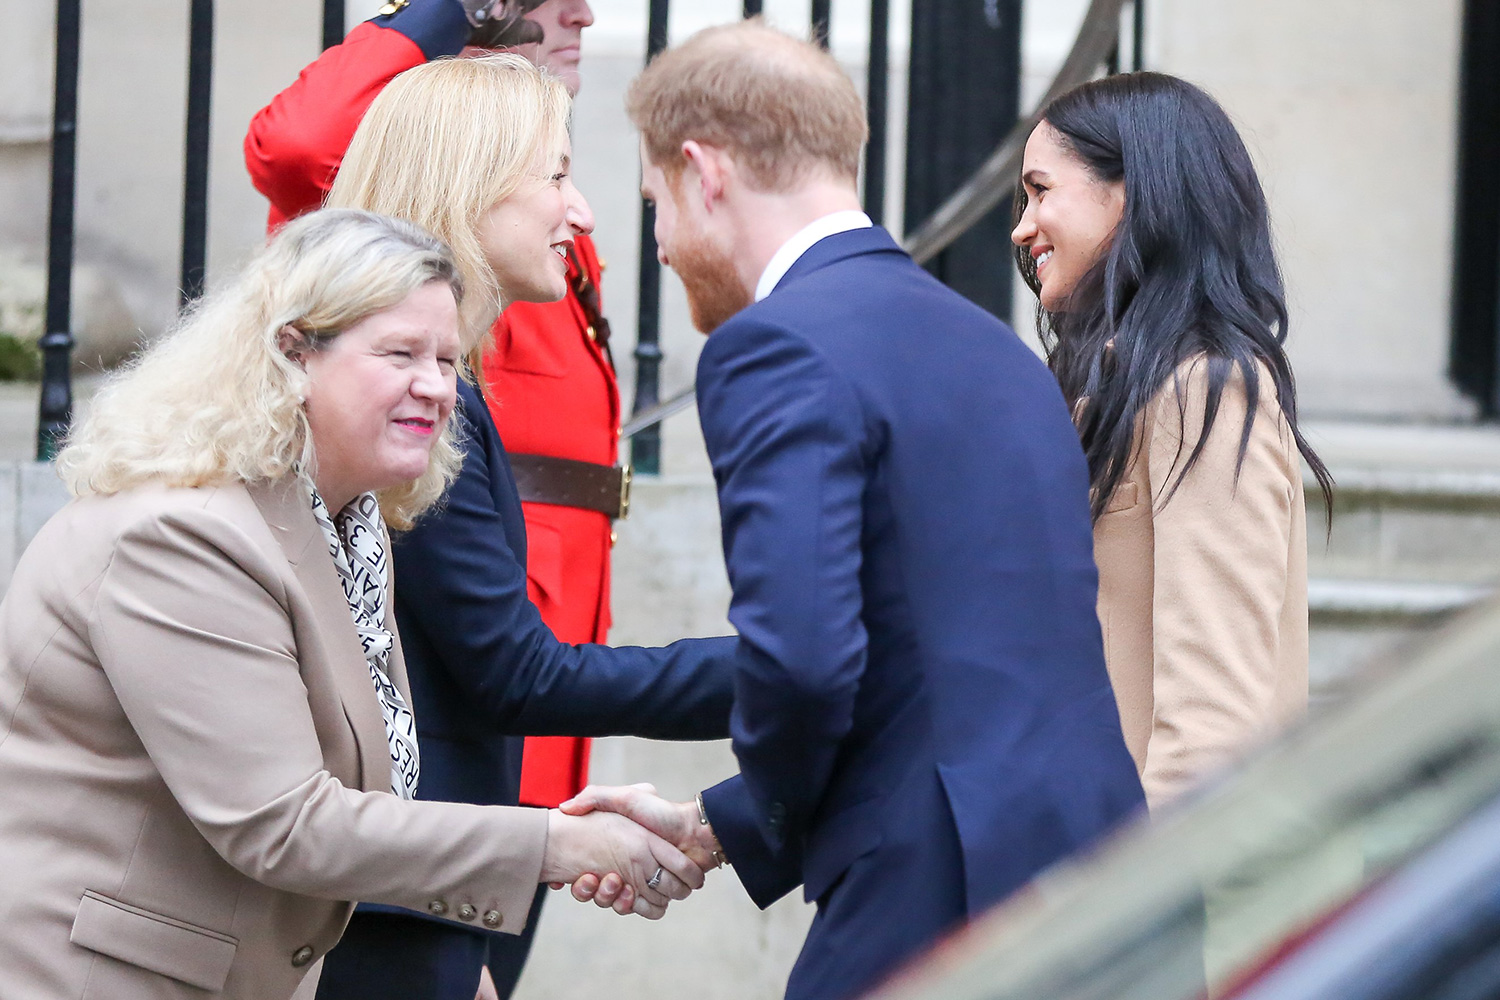 Prince Harry, Duke of Sussex and Meghan, Duchess of Sussex arrive at Canada House in London, United Kingdom on January 7, 2020